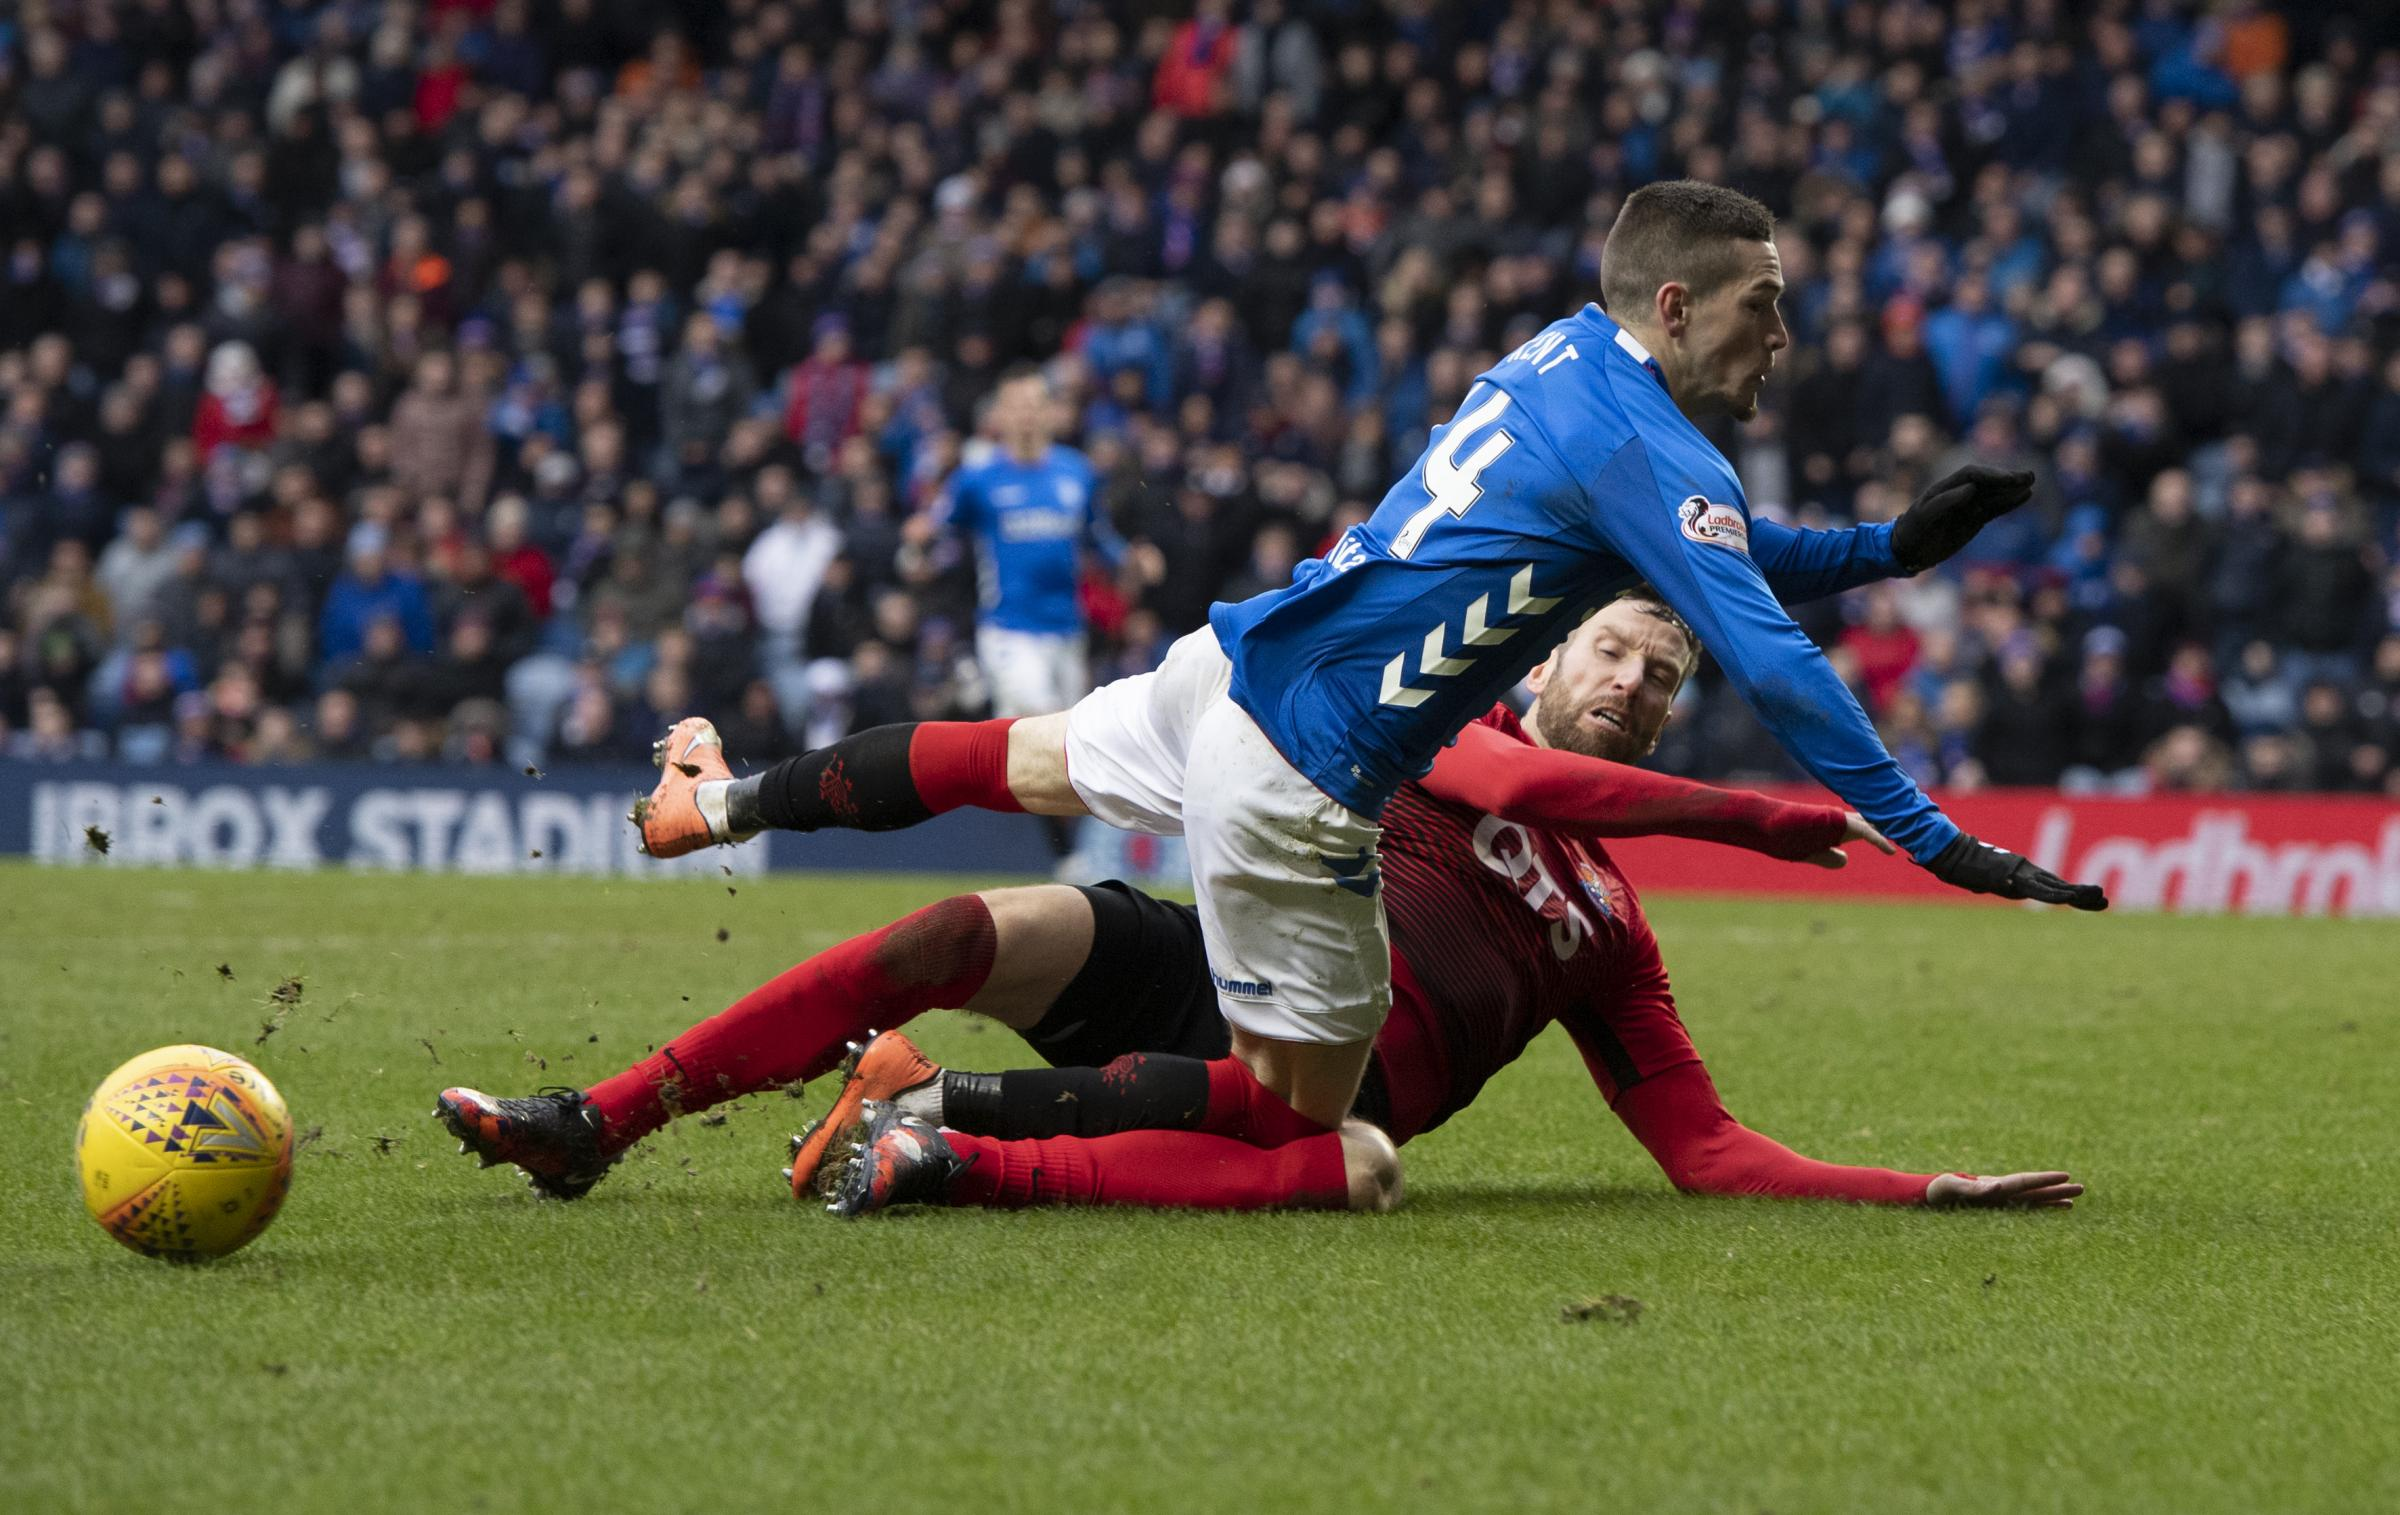 'Rugby team' Kilmarnock have made just 10 more fouls than Rangers this season